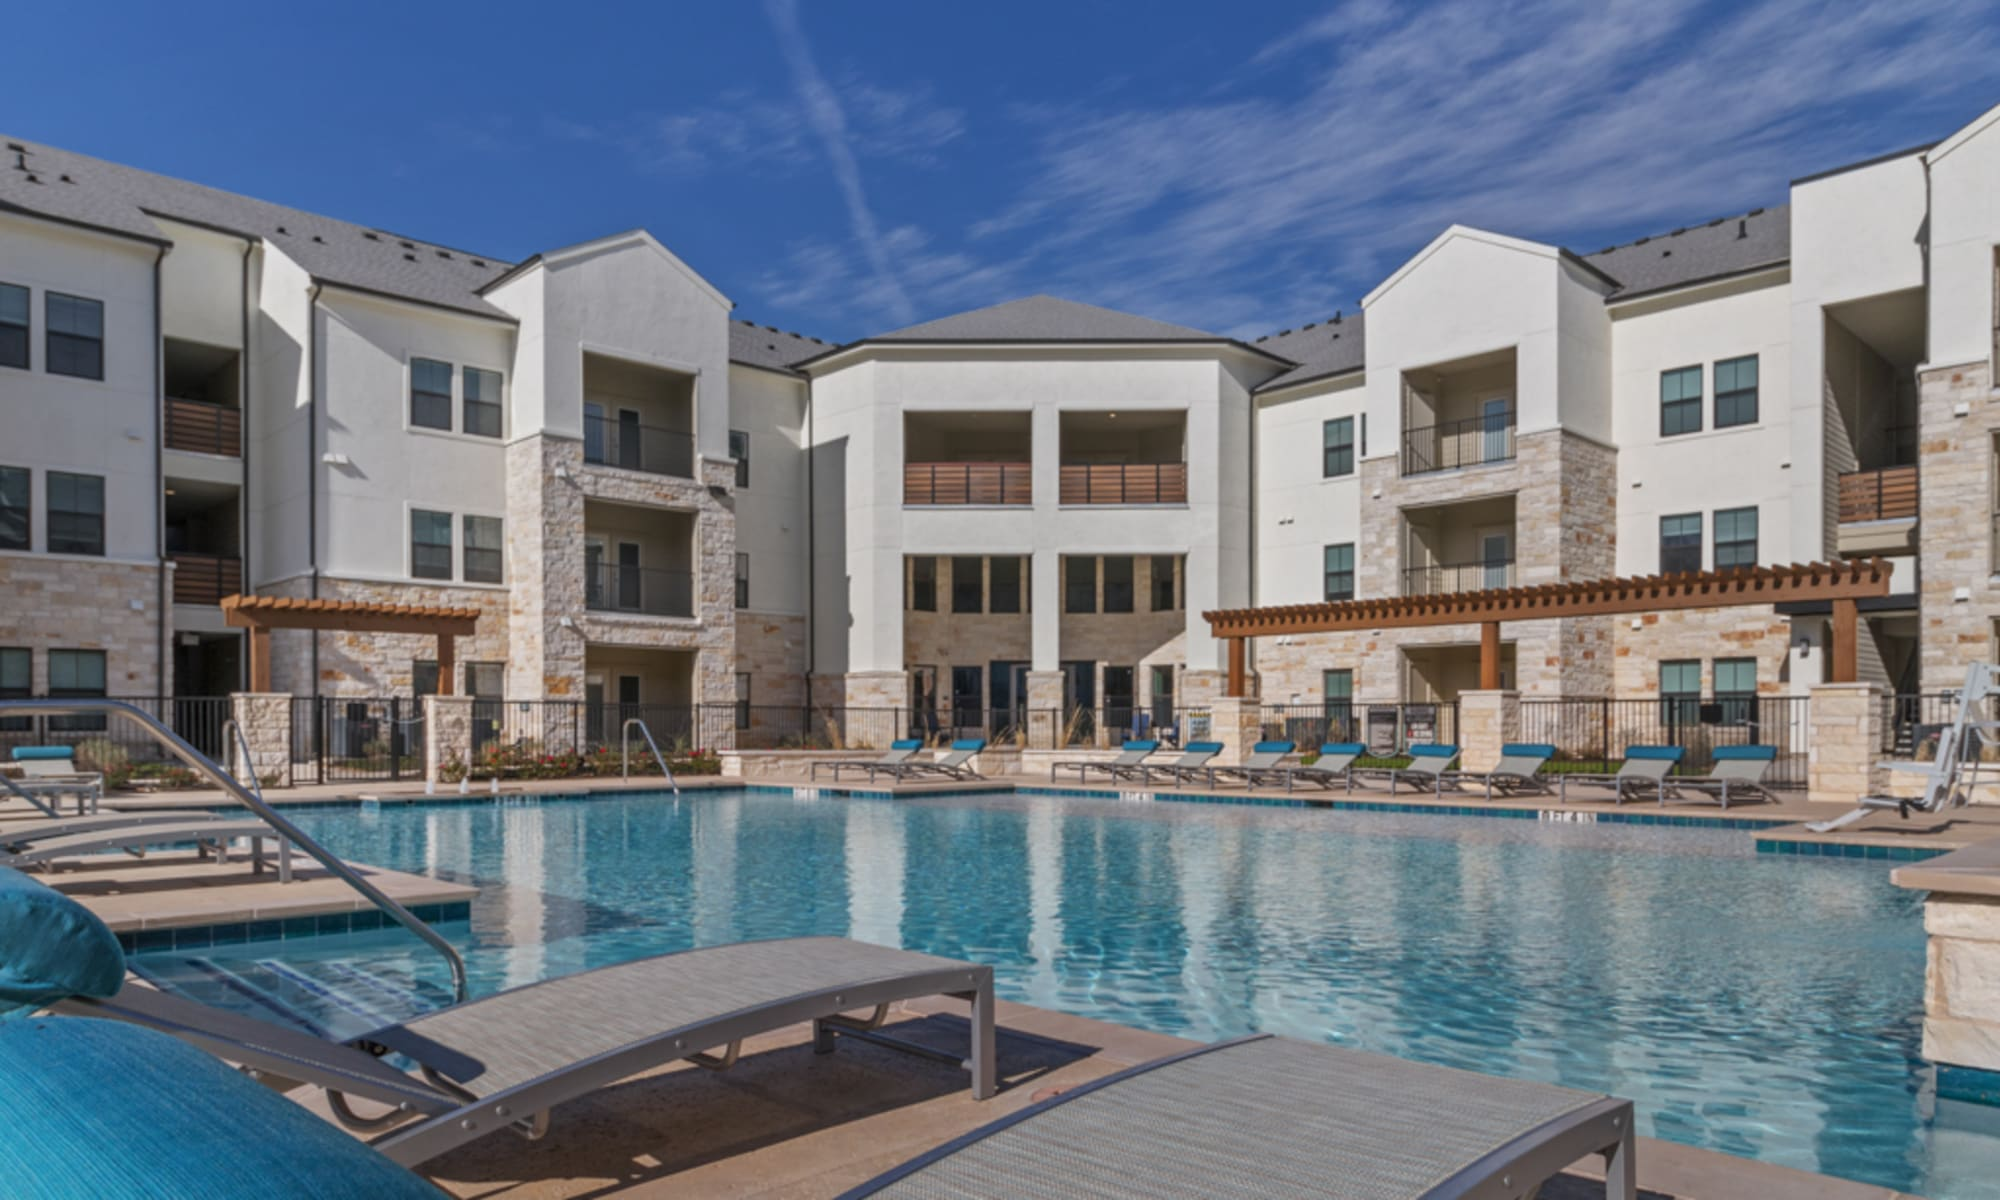 Apartments at McCarty Commons in San Marcos, Texas